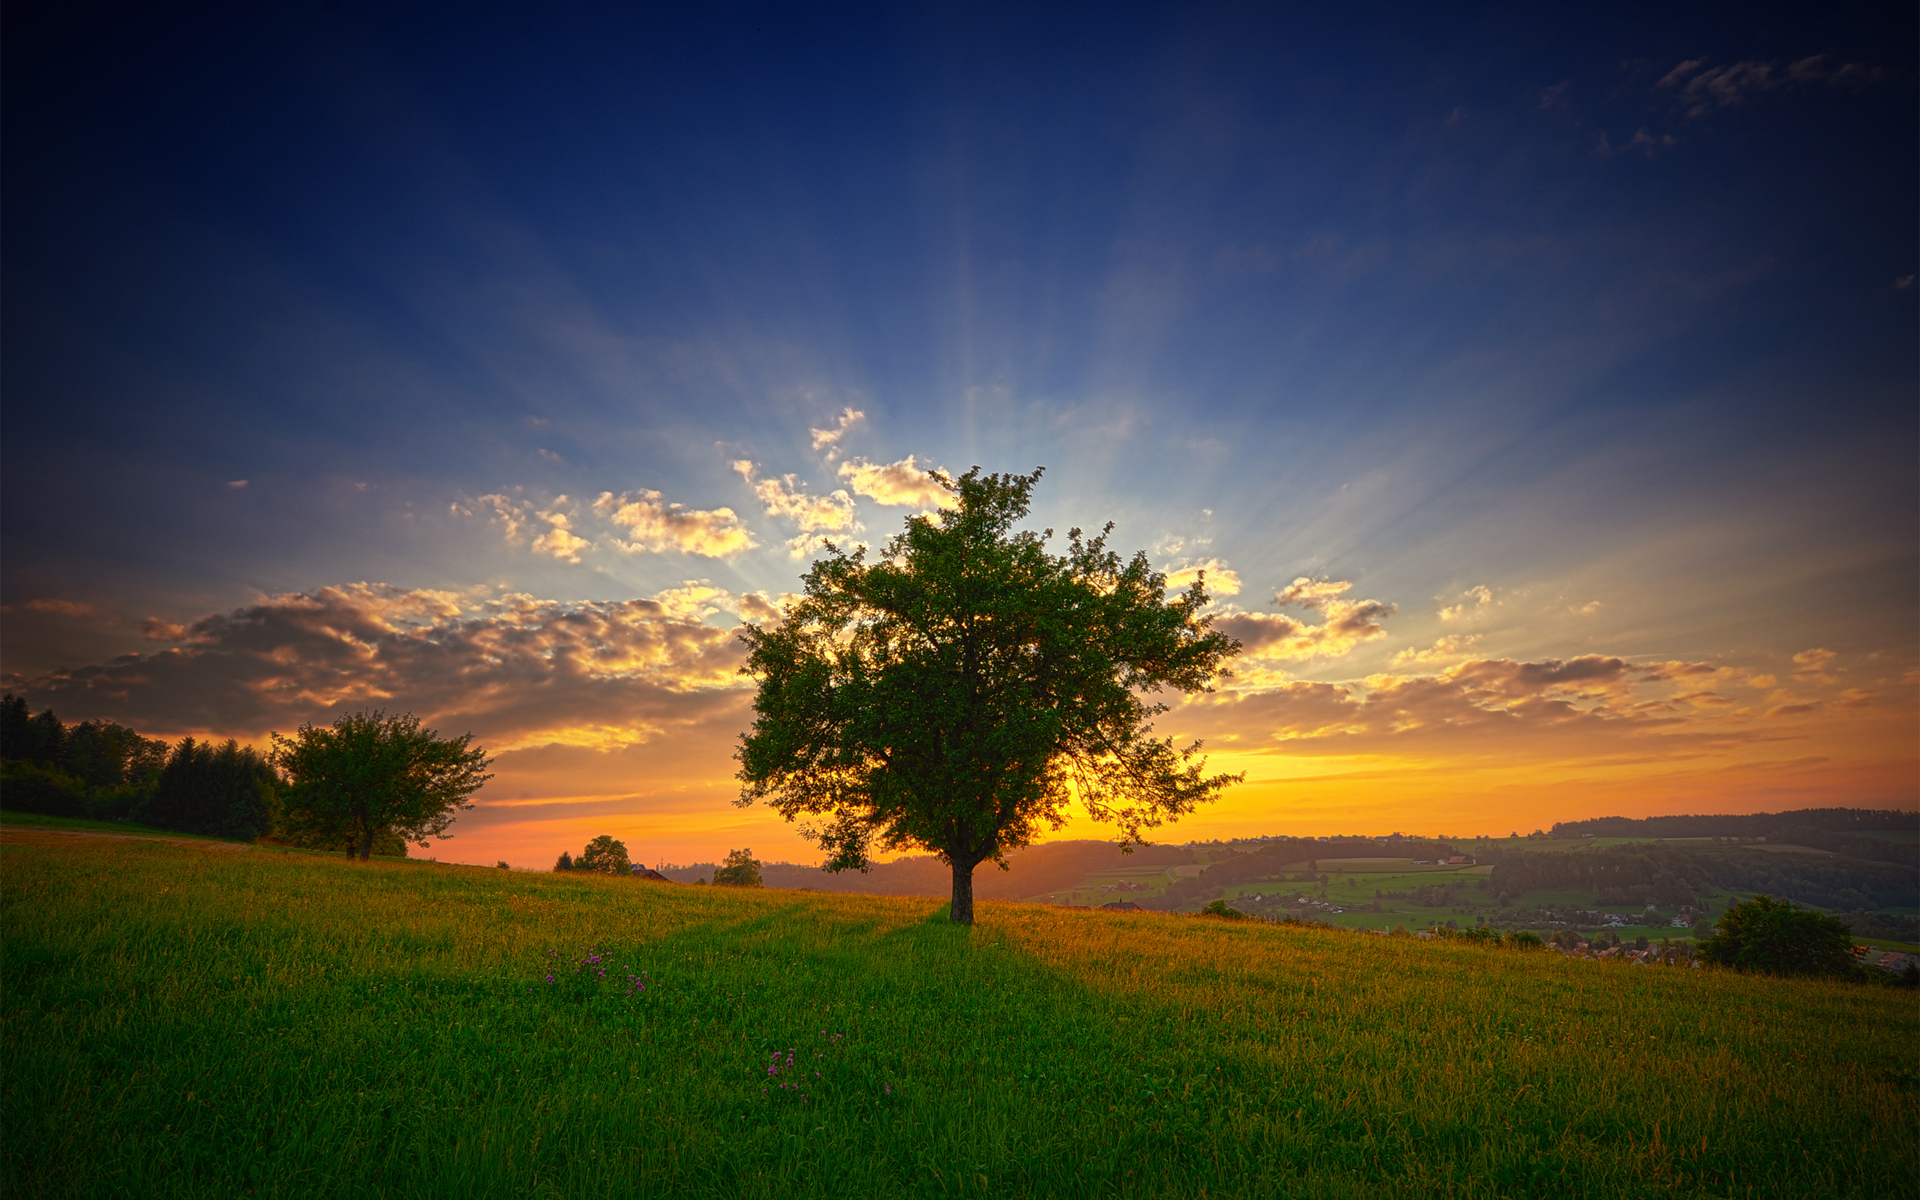 horizon Trees sunlight nature HD Wallpaper